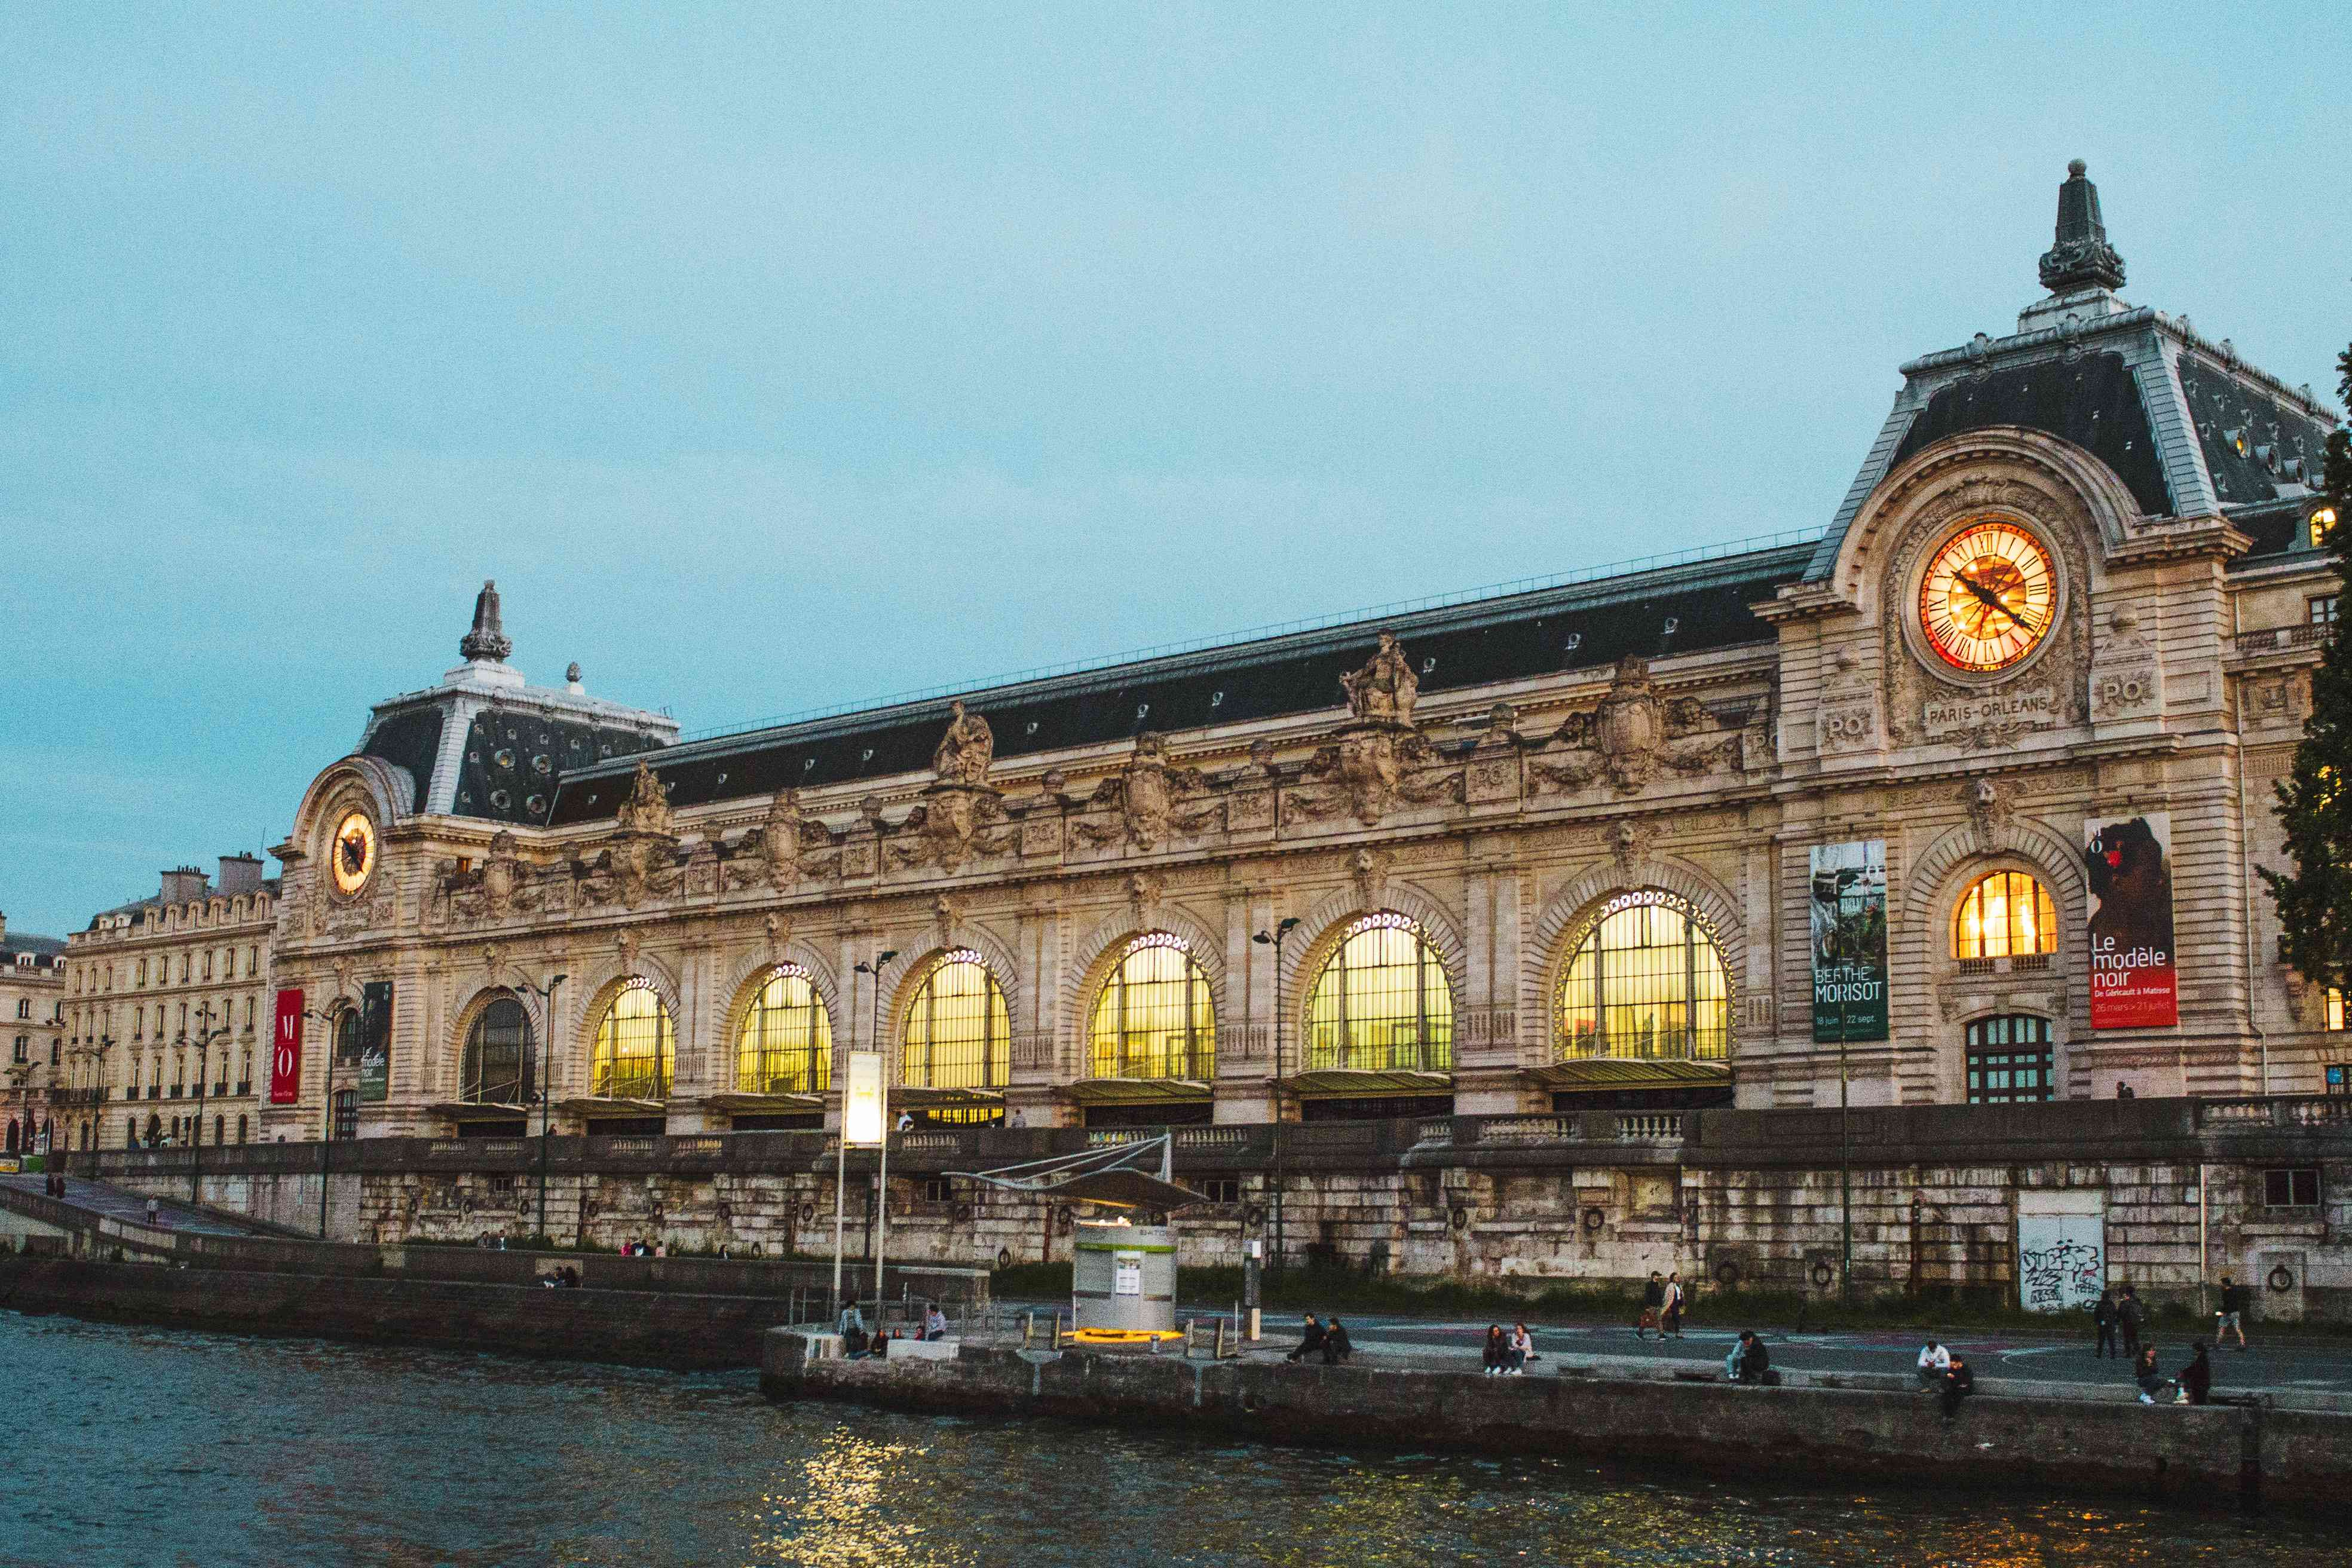 Musee D'Orsay lit up at night seen from the Seine